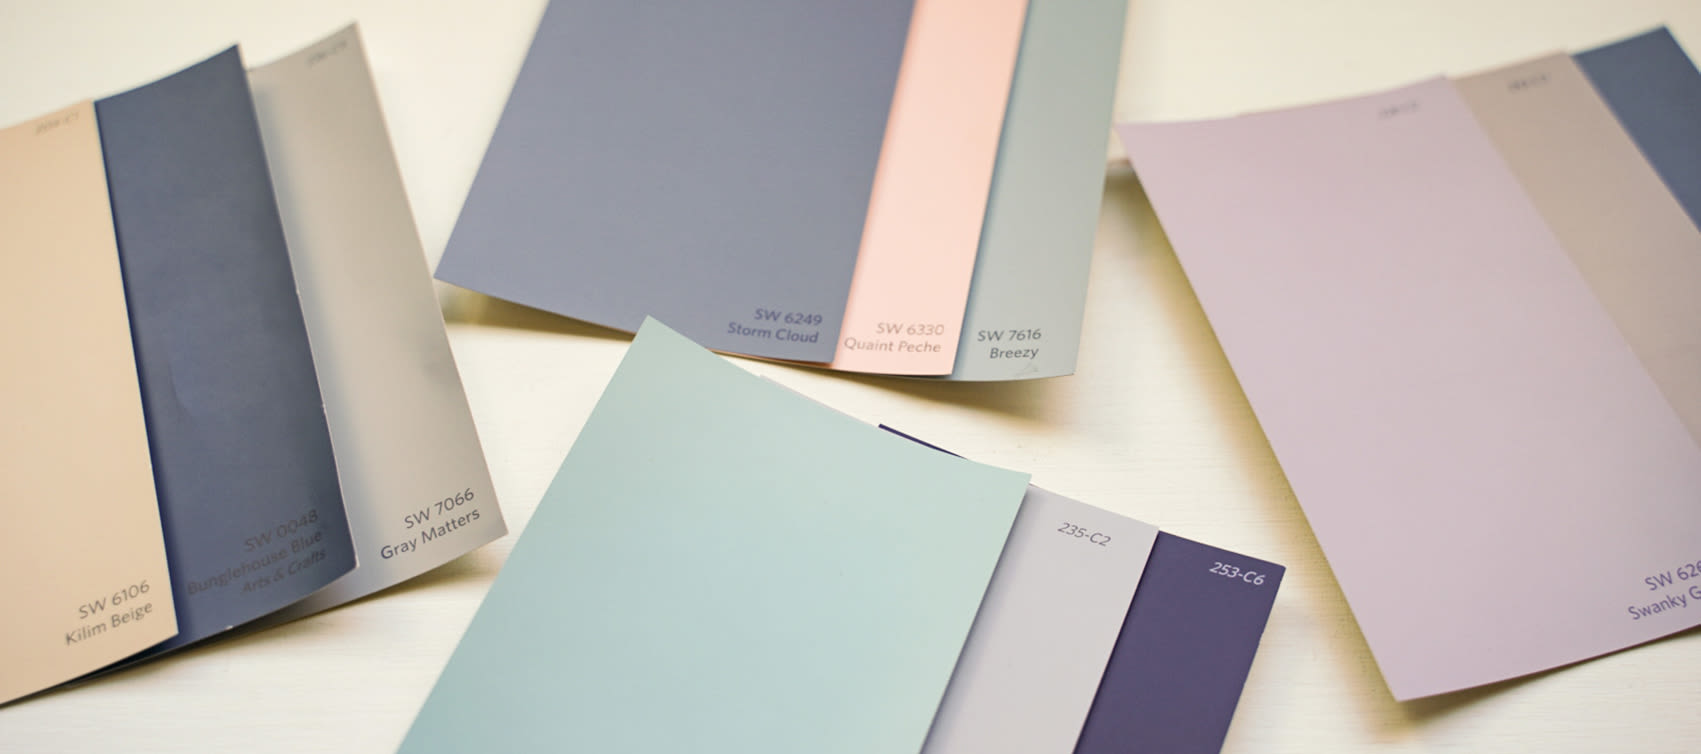 Paint Swatches at Paloma Summit Condominium Rentals in Foothill Ranch